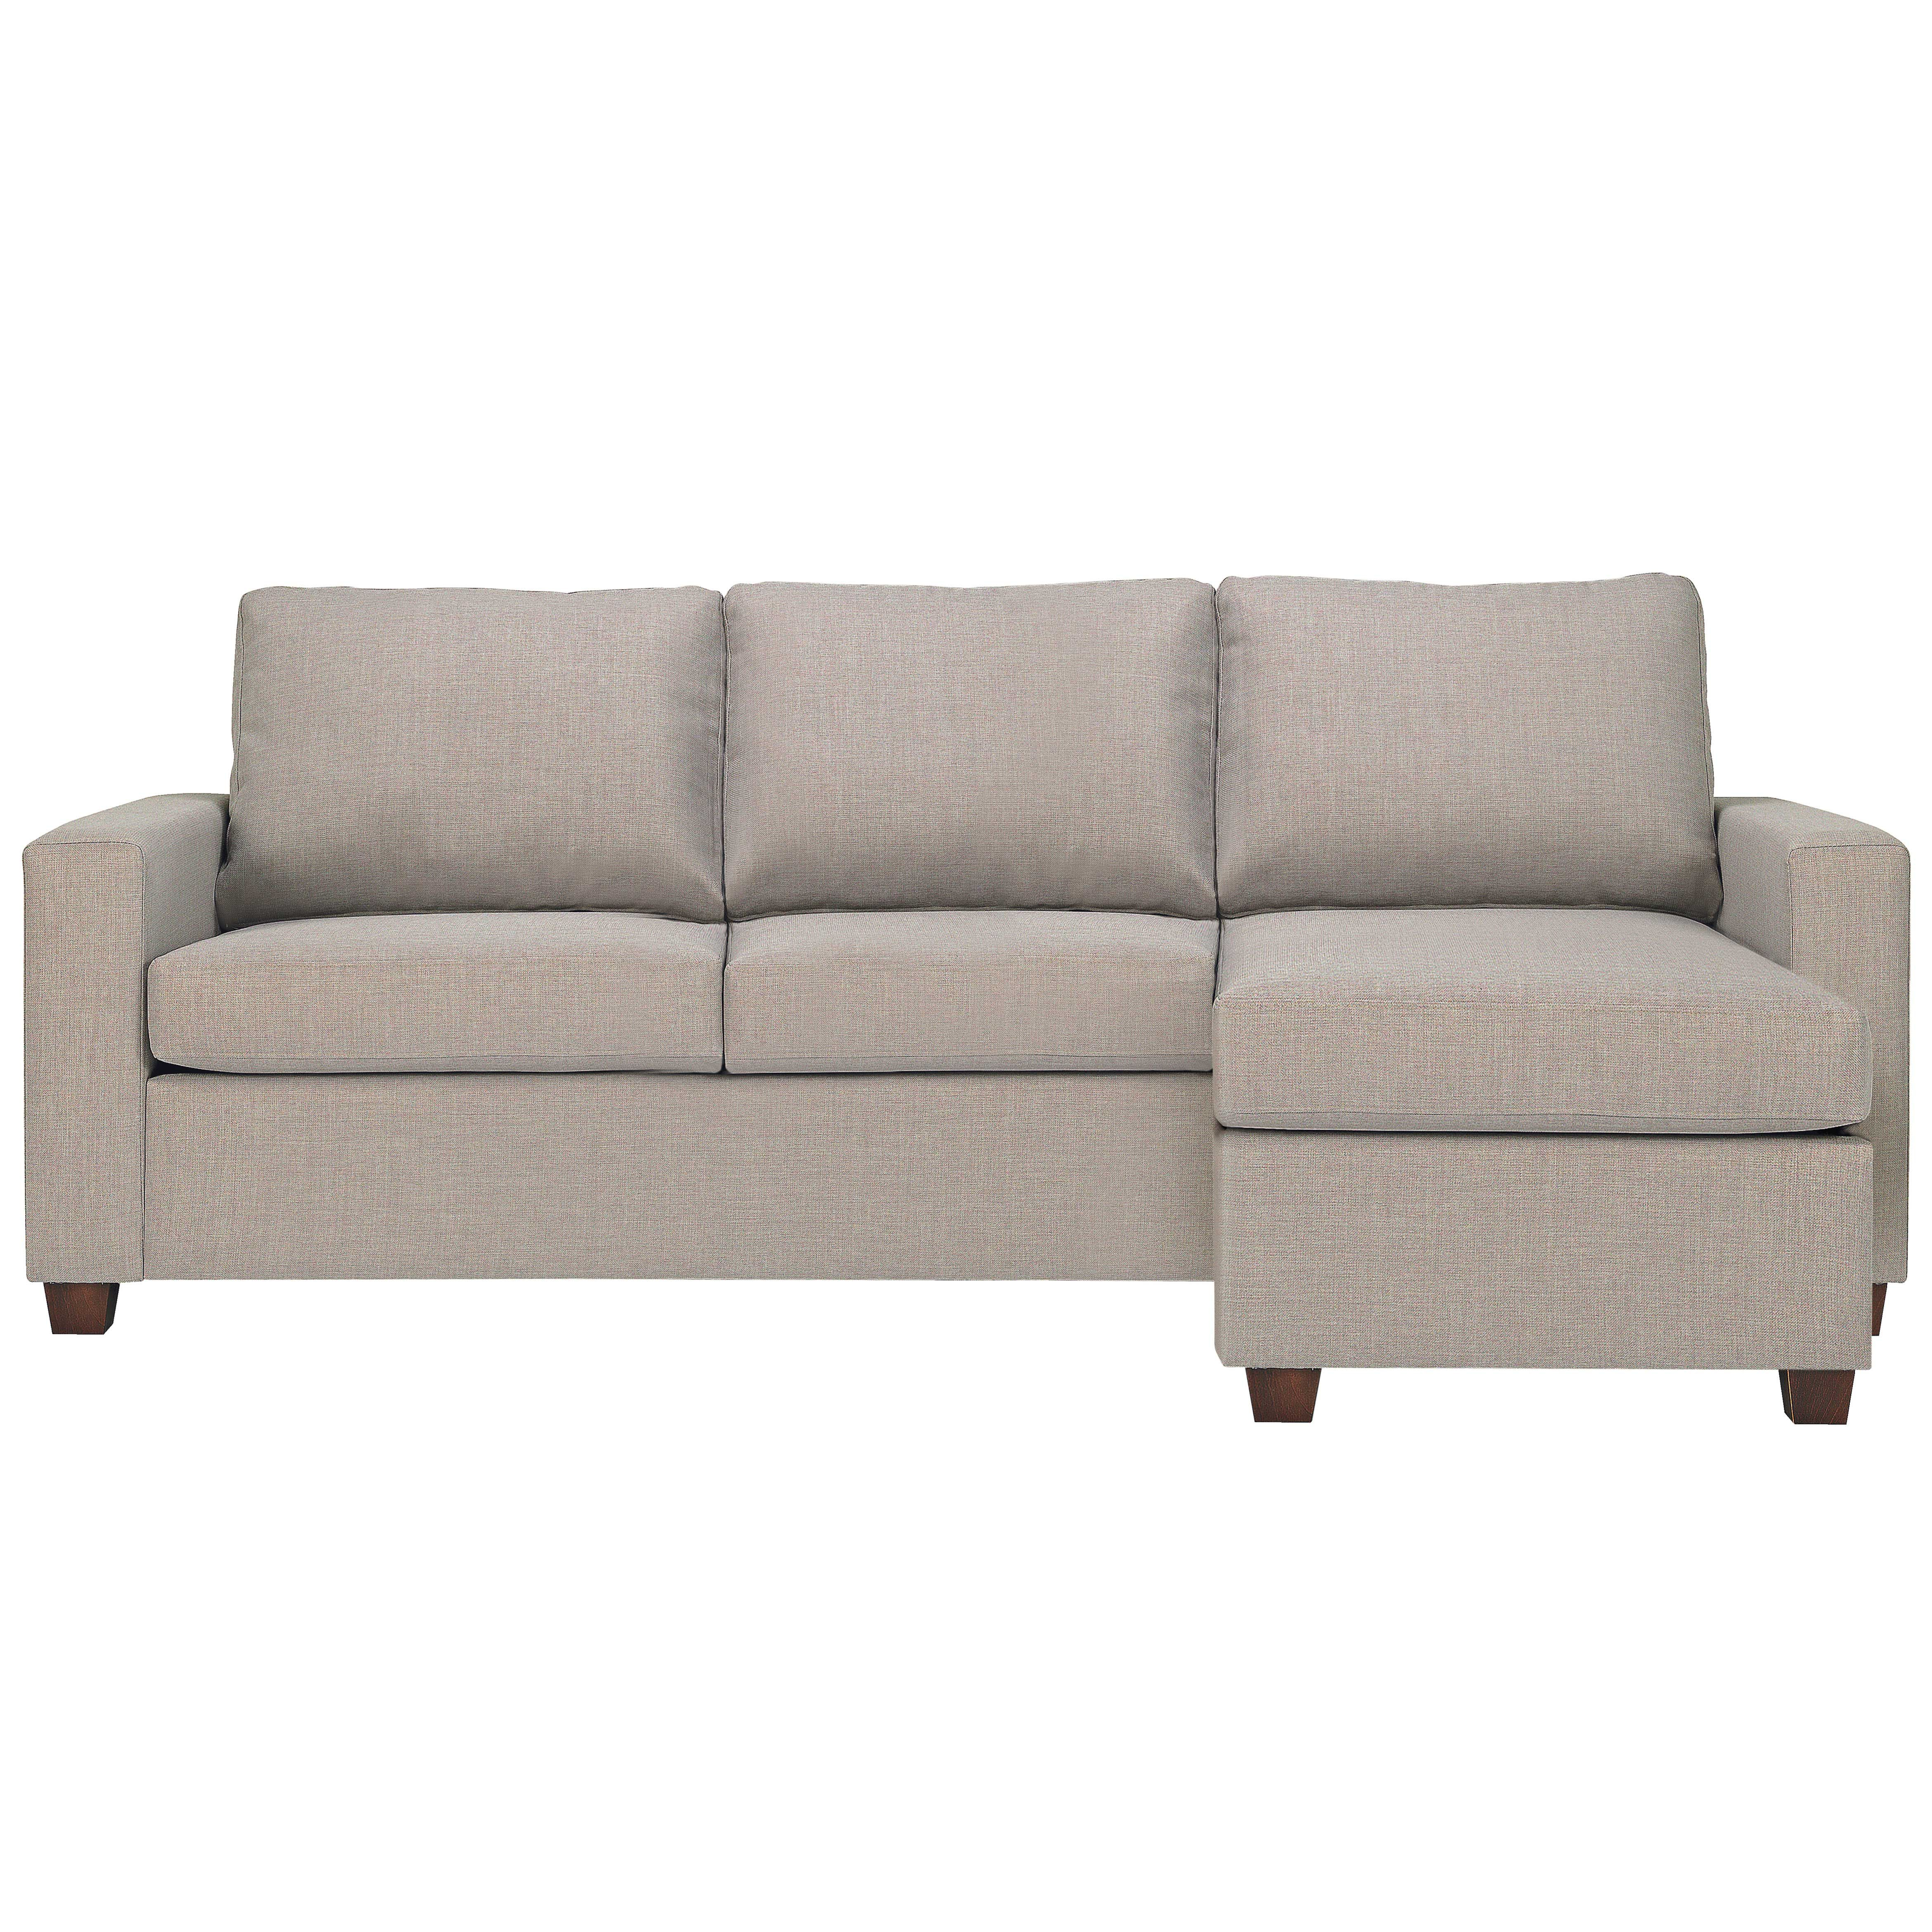 Newport 3 Seater Fabric Queen 4 Innerspring Sofa Bed With Removable Chaise Domayne Online 1949 203 X 160 86 Cm